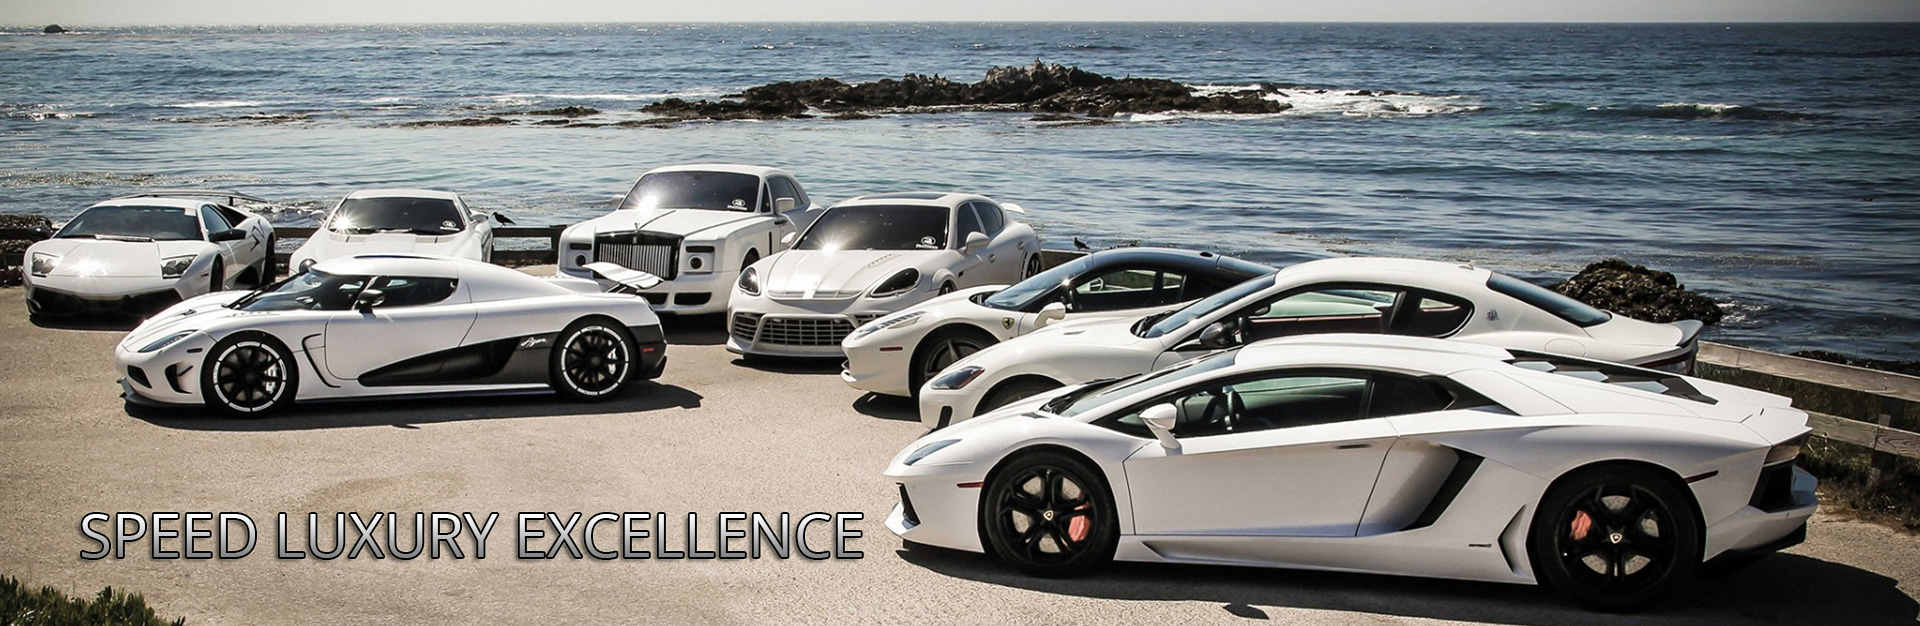 Hire luxury cars